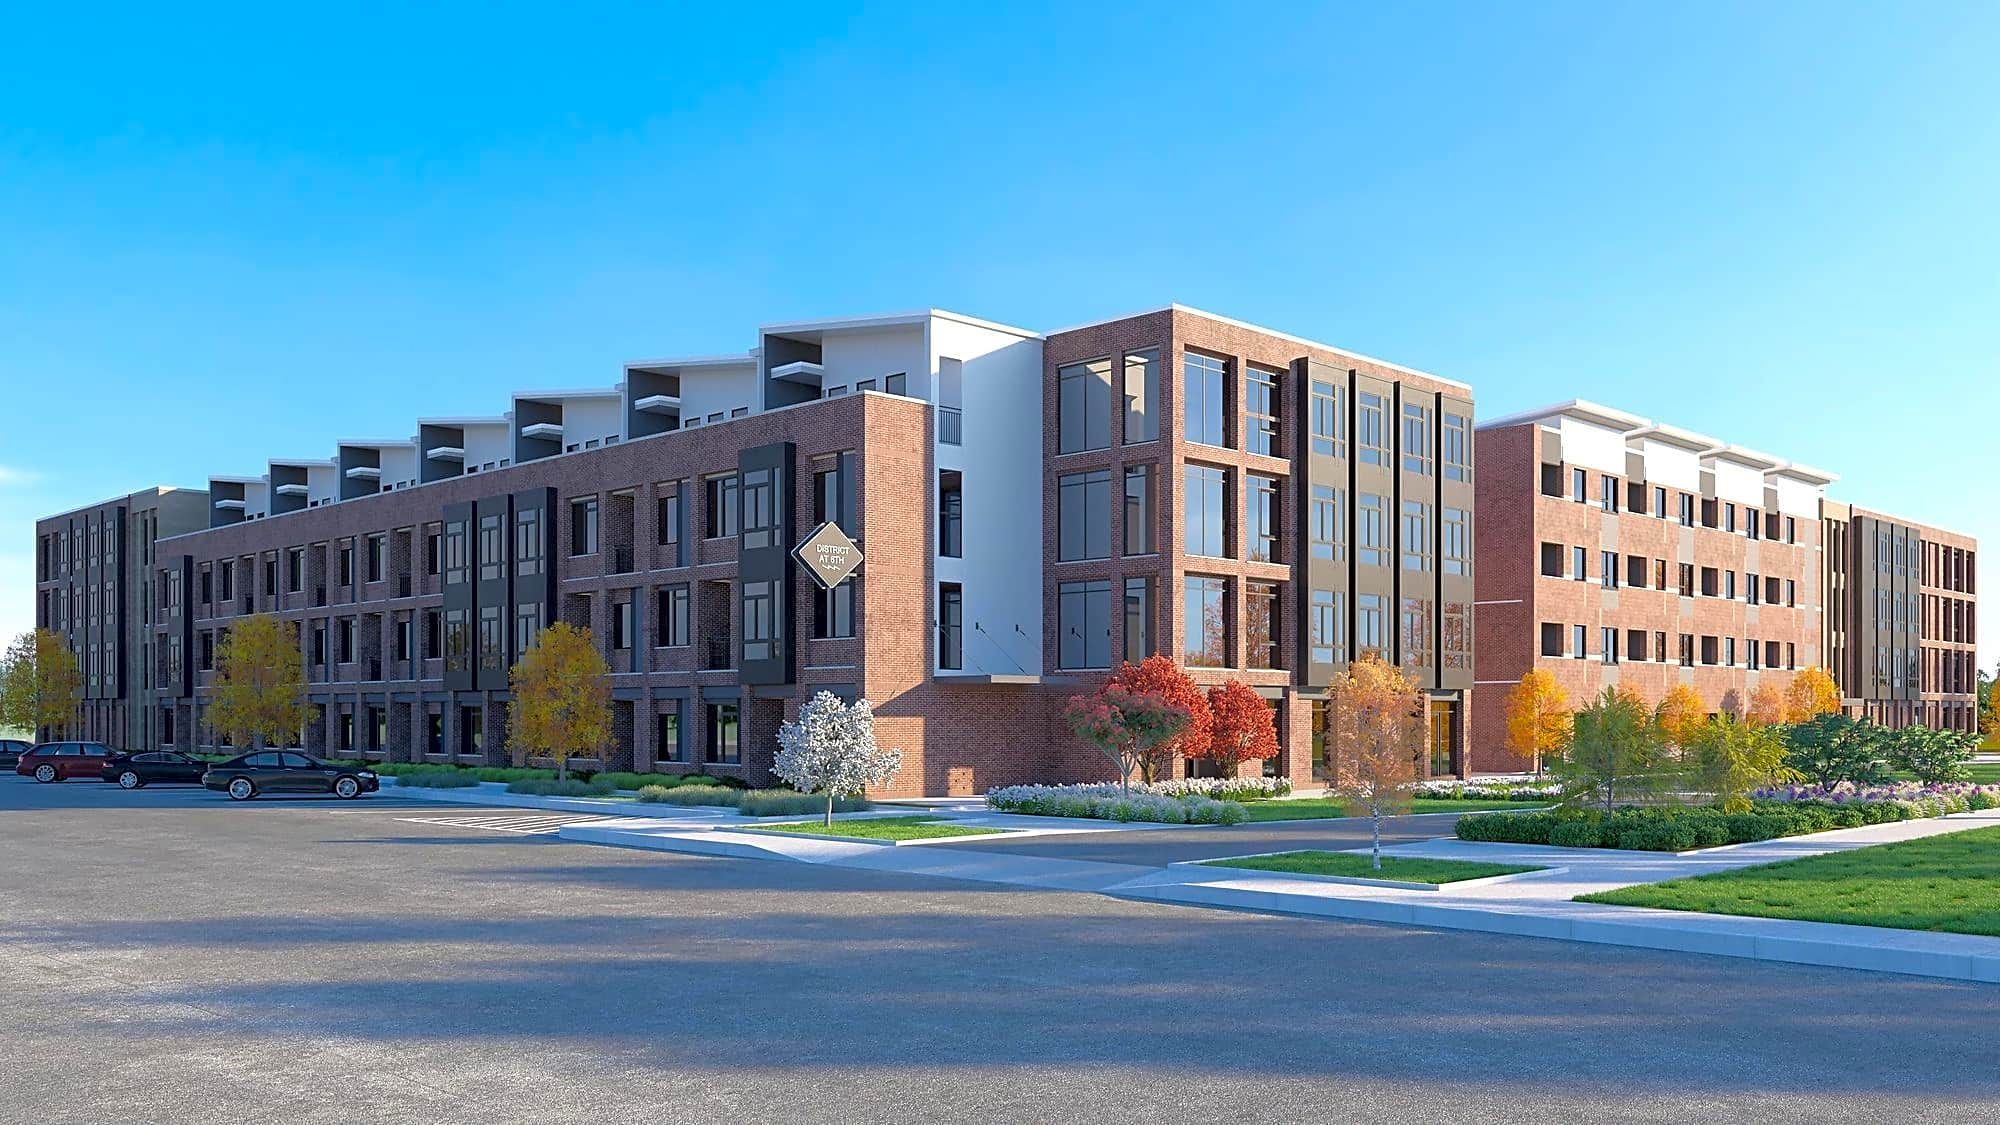 Apartments Near Mercy College of Health Sciences District at 6th Apartments for Mercy College of Health Sciences Students in Des Moines, IA